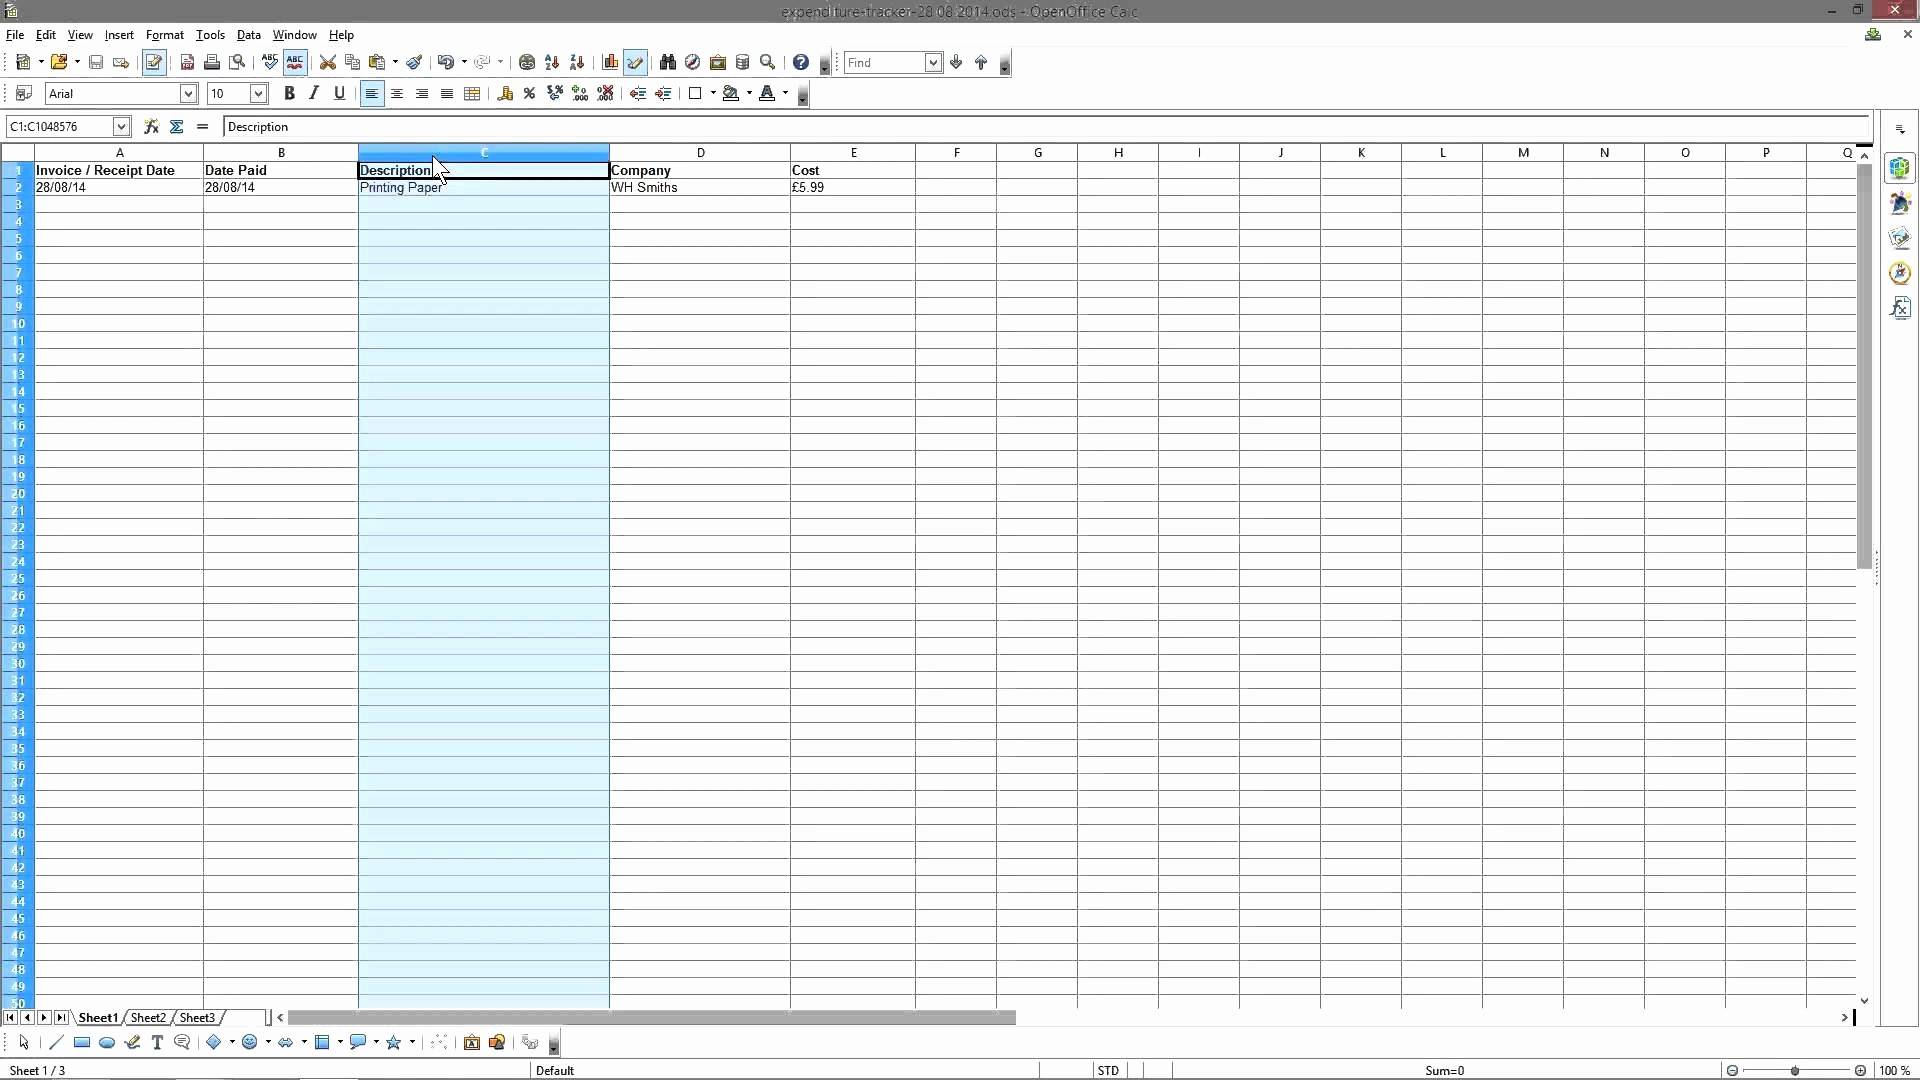 Excel Template For Small Business Bookkeeping Spreadsheet Examples Throughout Examples Of Bookkeeping Spreadsheets